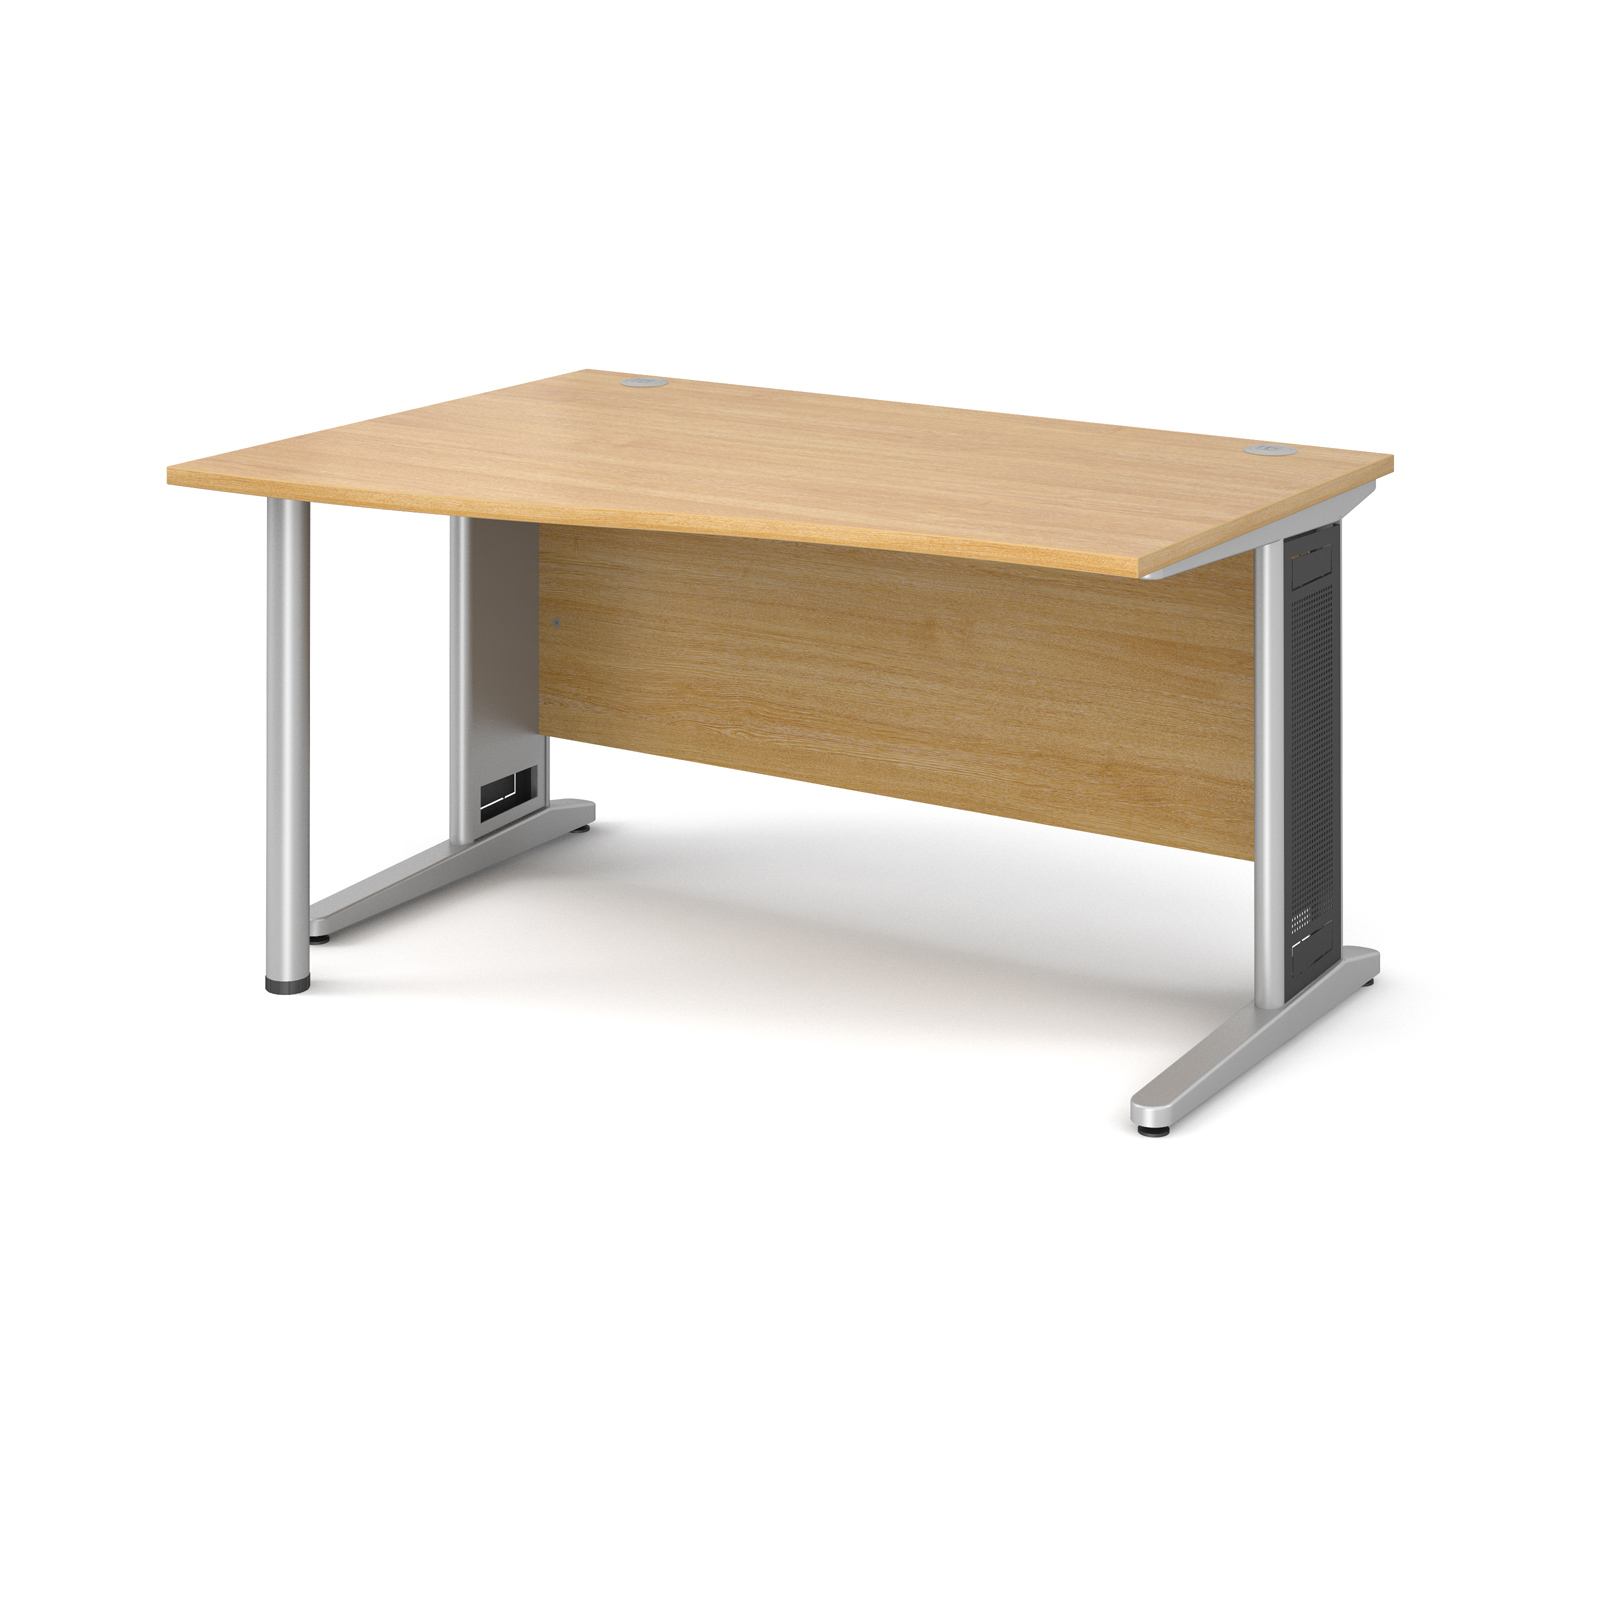 Largo left hand wave desk 1400mm - silver cantilever frame with removable grill, oak top